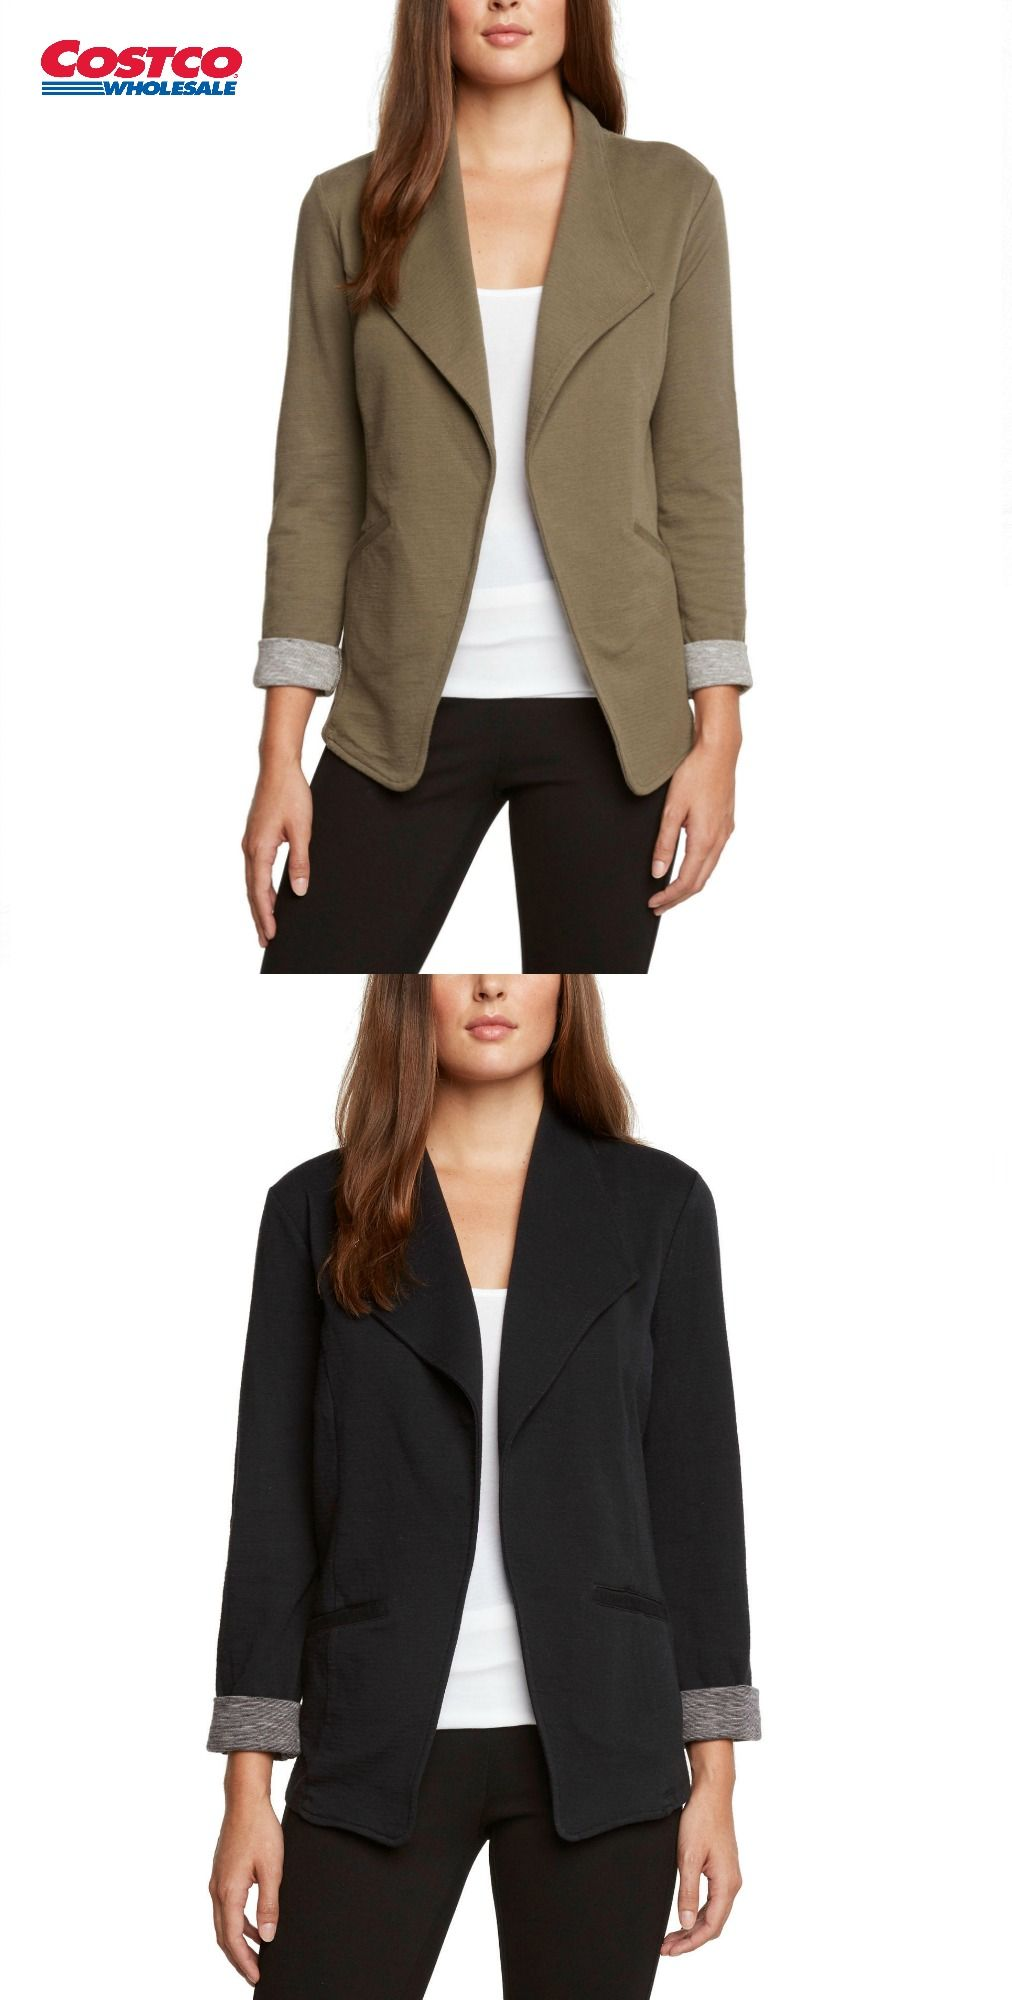 aebe2745ca Matty M Ladies  Knit Blazer  19.99 Stay comfortable in this fashionable  outfit.